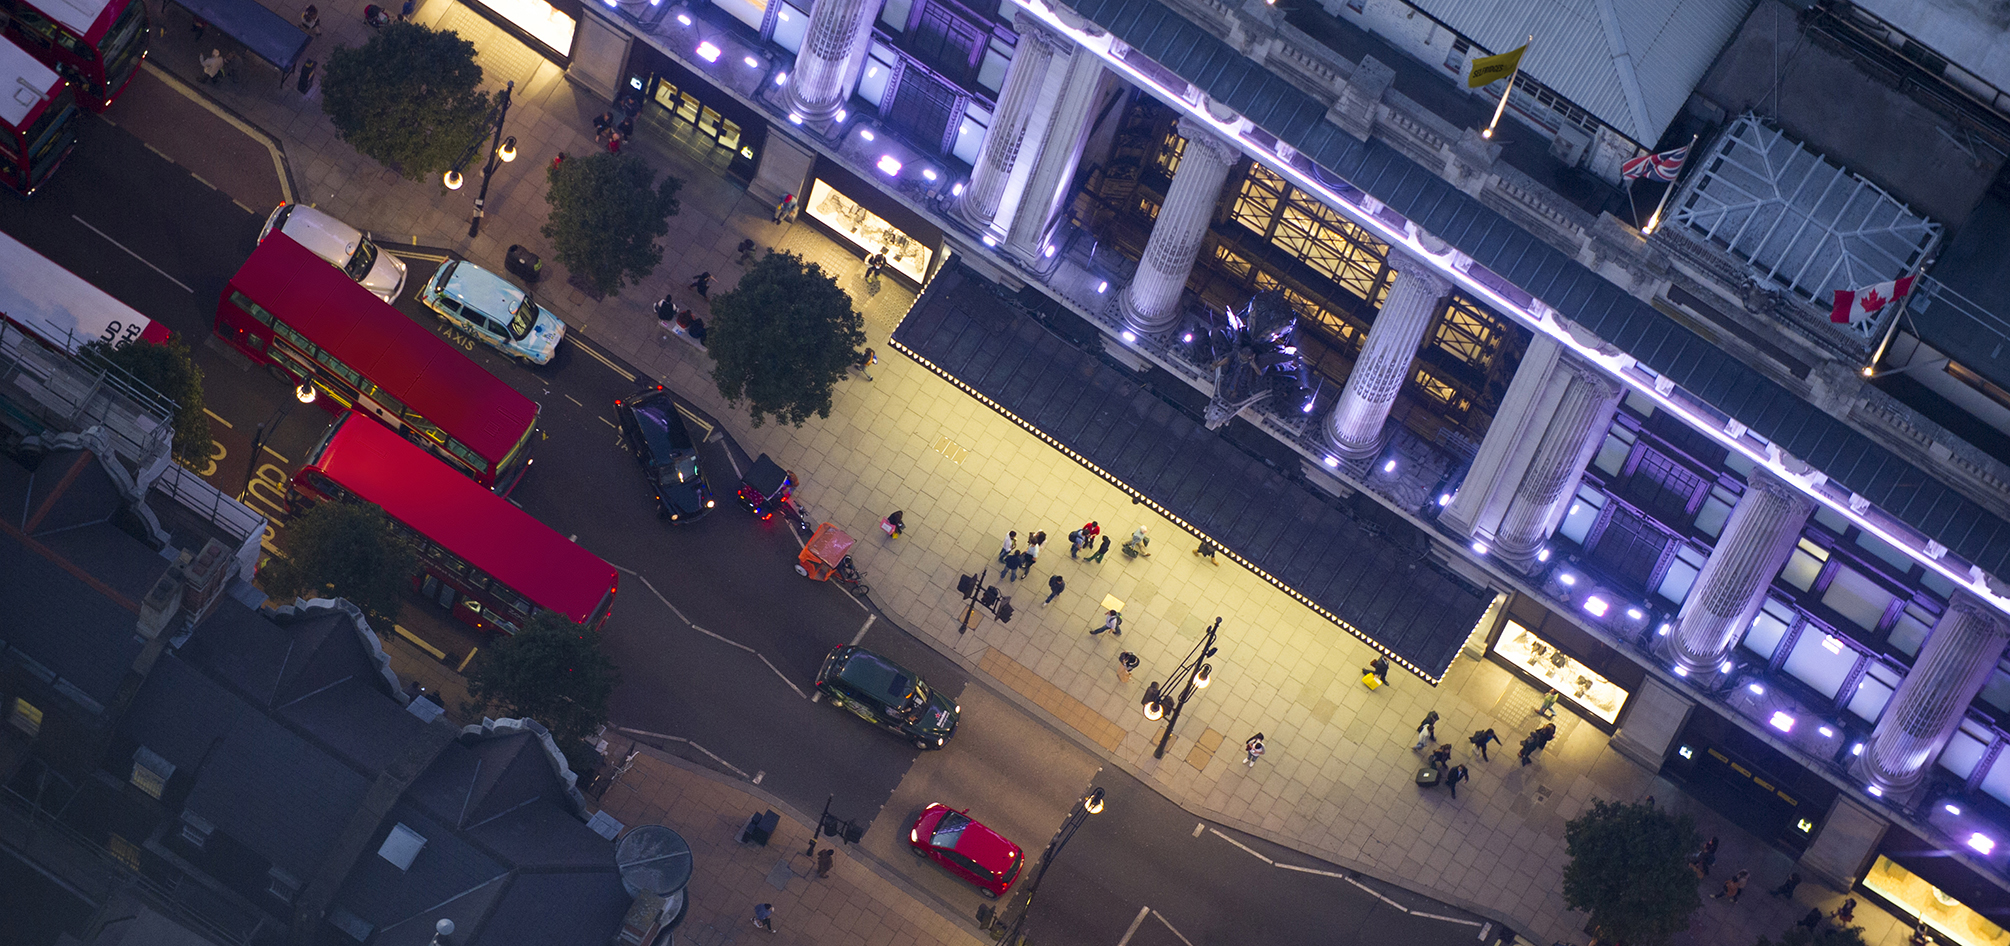 Late-night shopping? Indulge yourself in good, old-fashioned style at Selfridges.